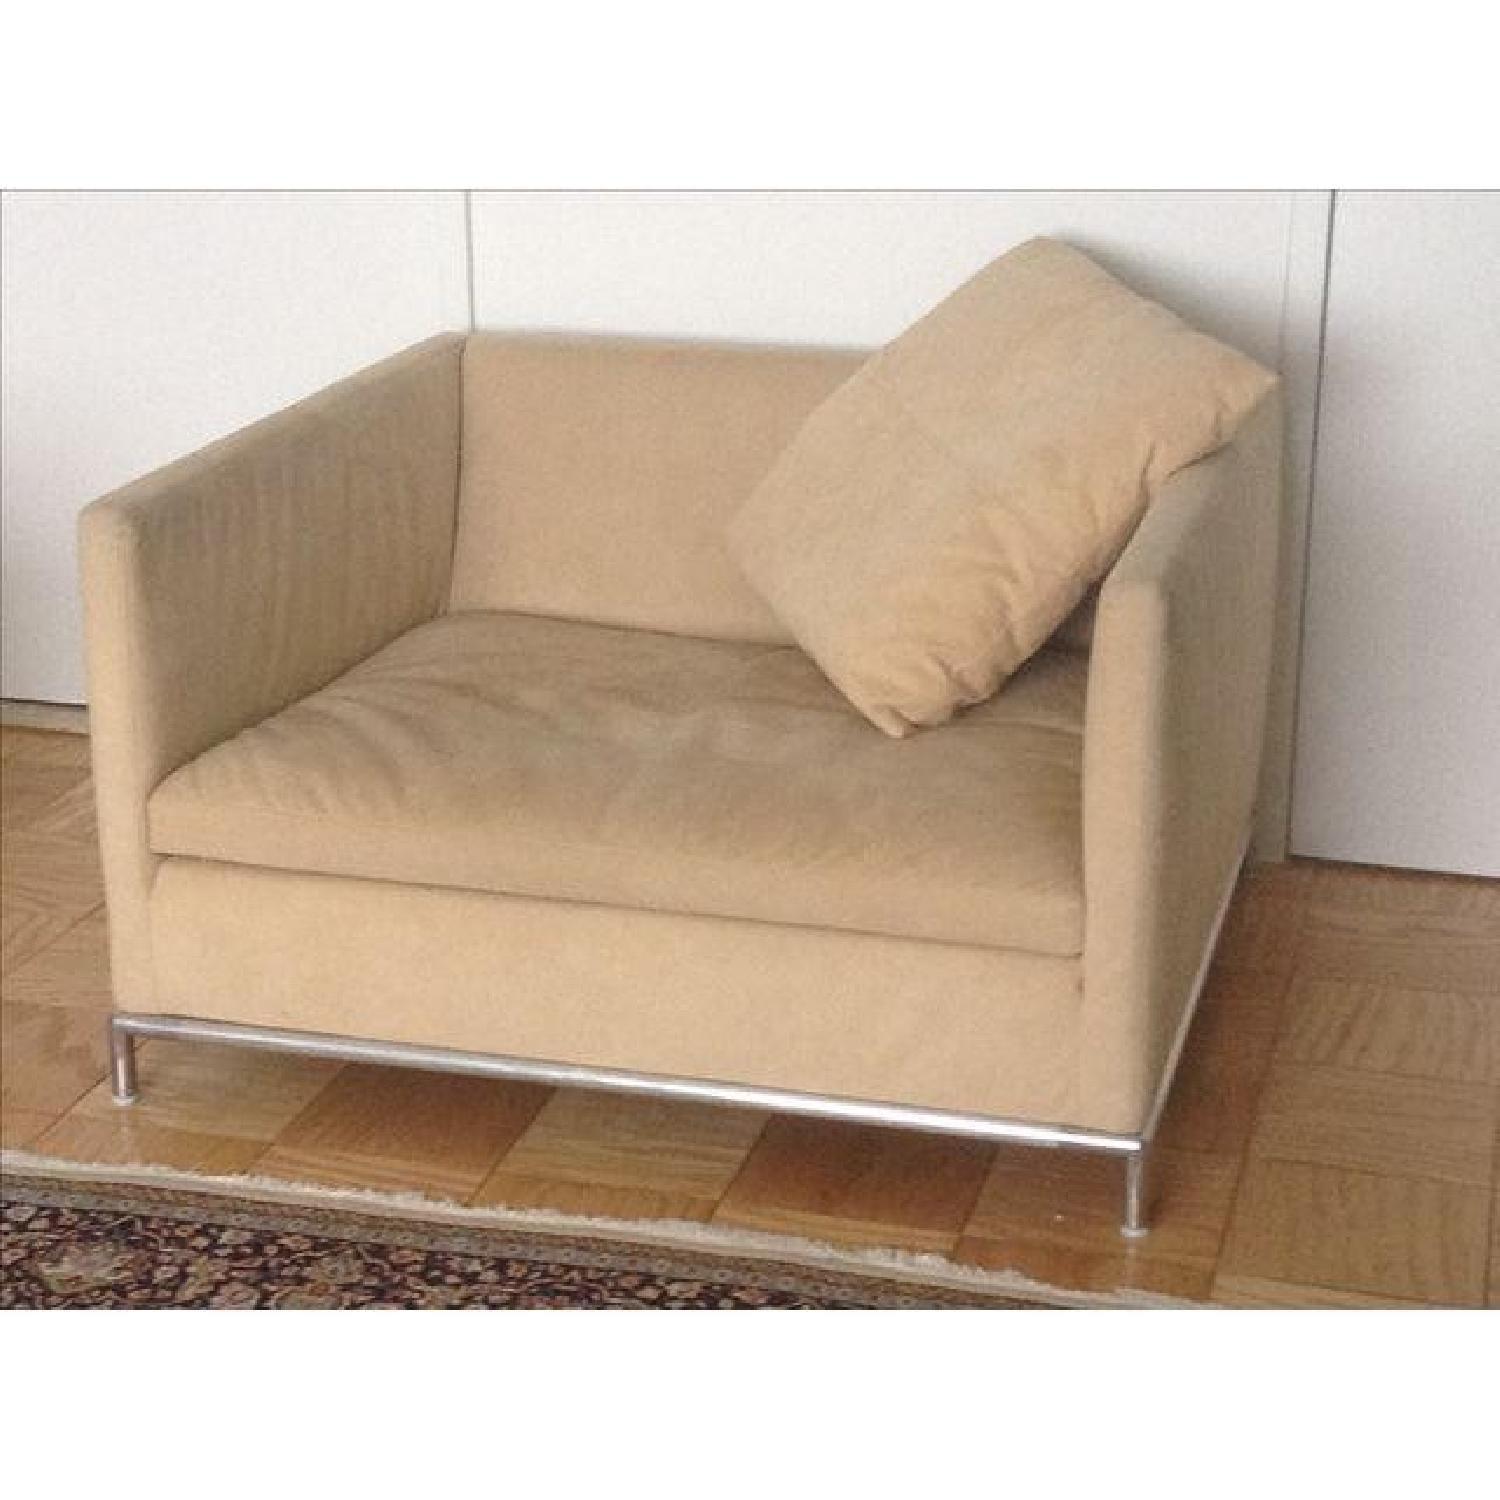 B&B Italia Ultrasuede Chair - image-2